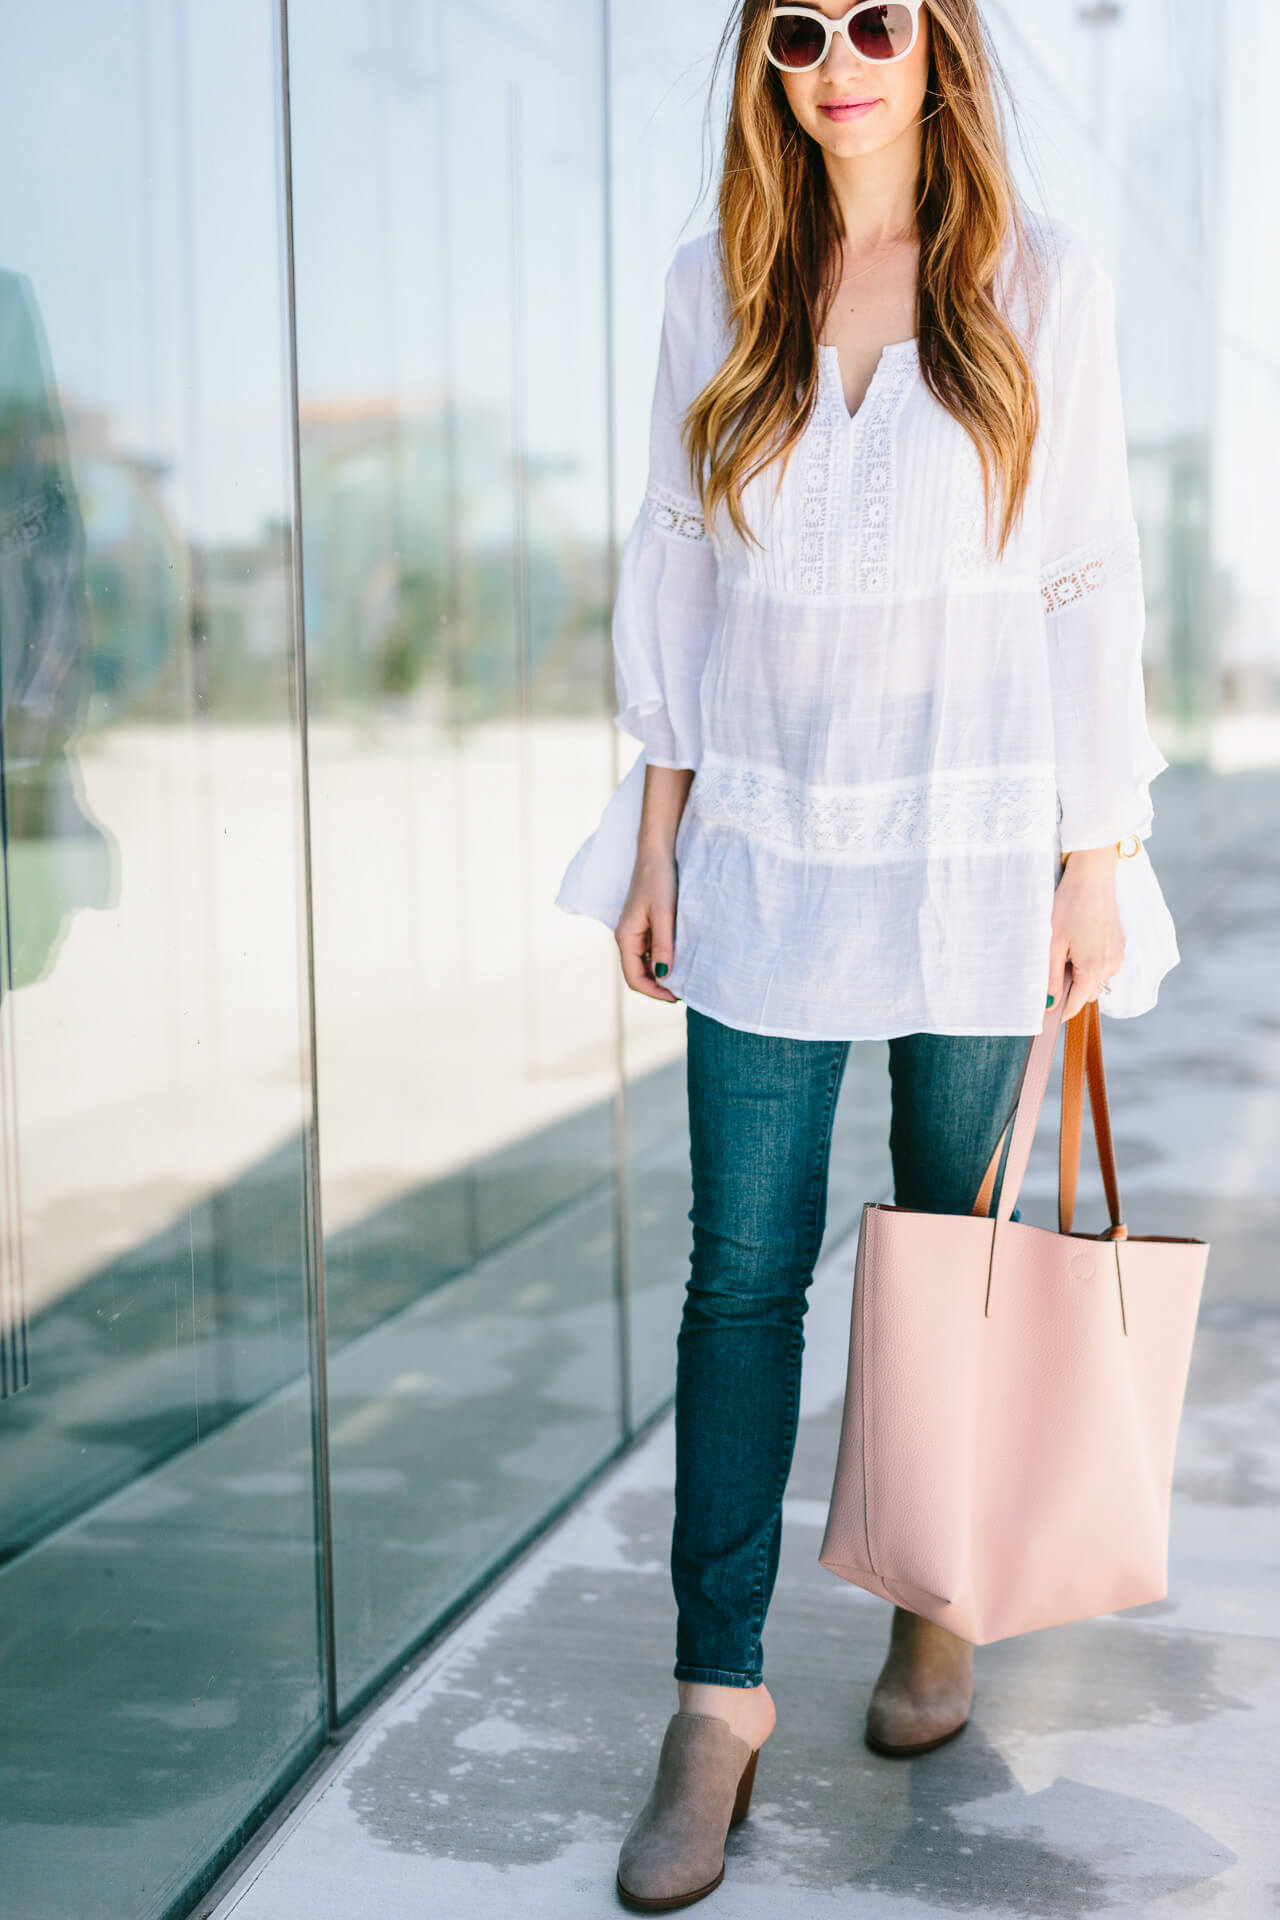 white bohemian casual outfit inspiration for spring